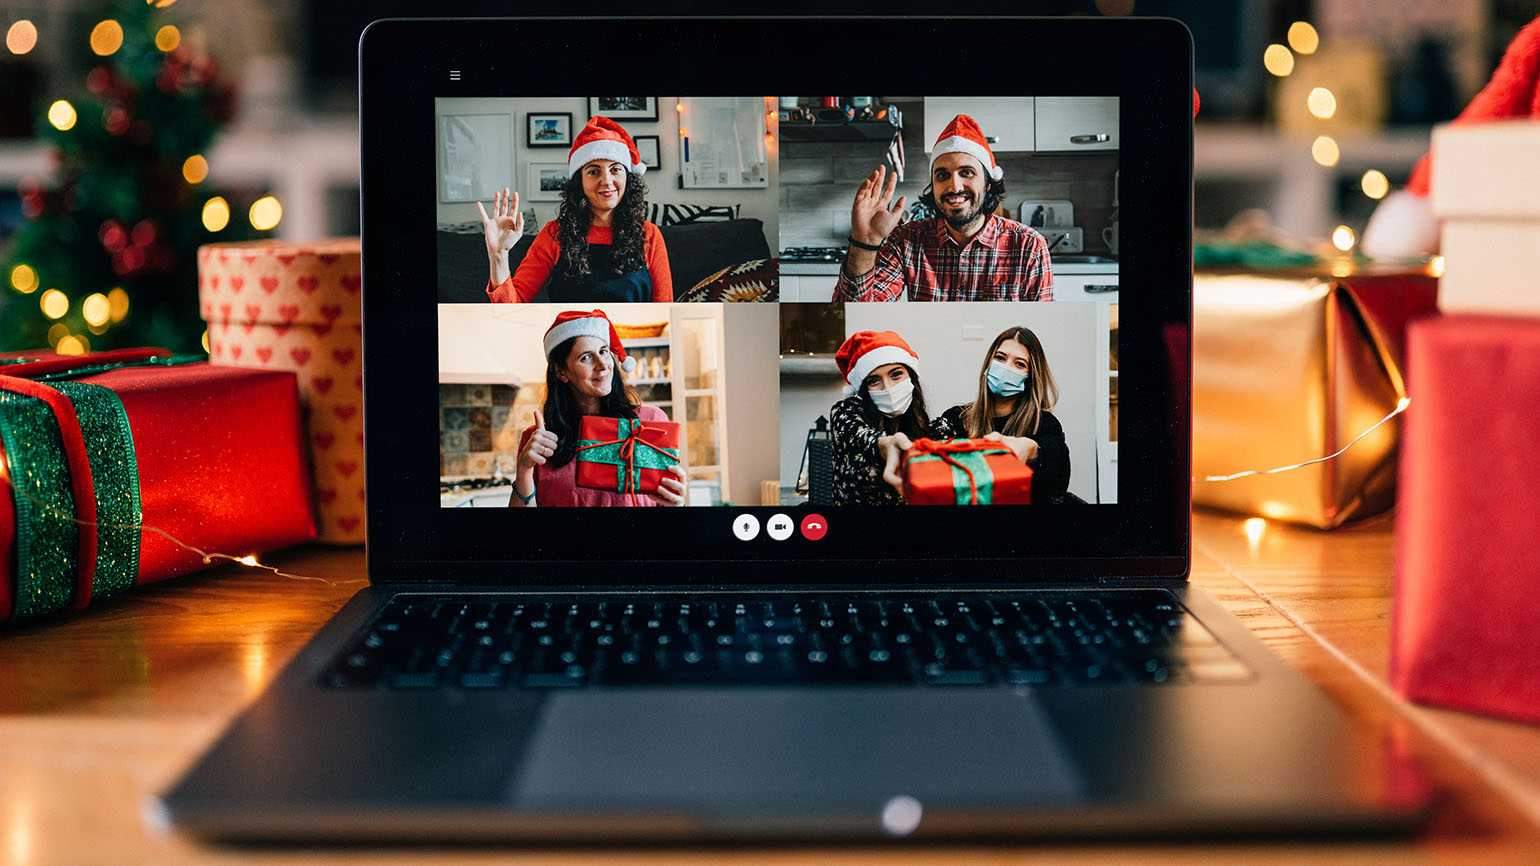 Virtual holiday gathering